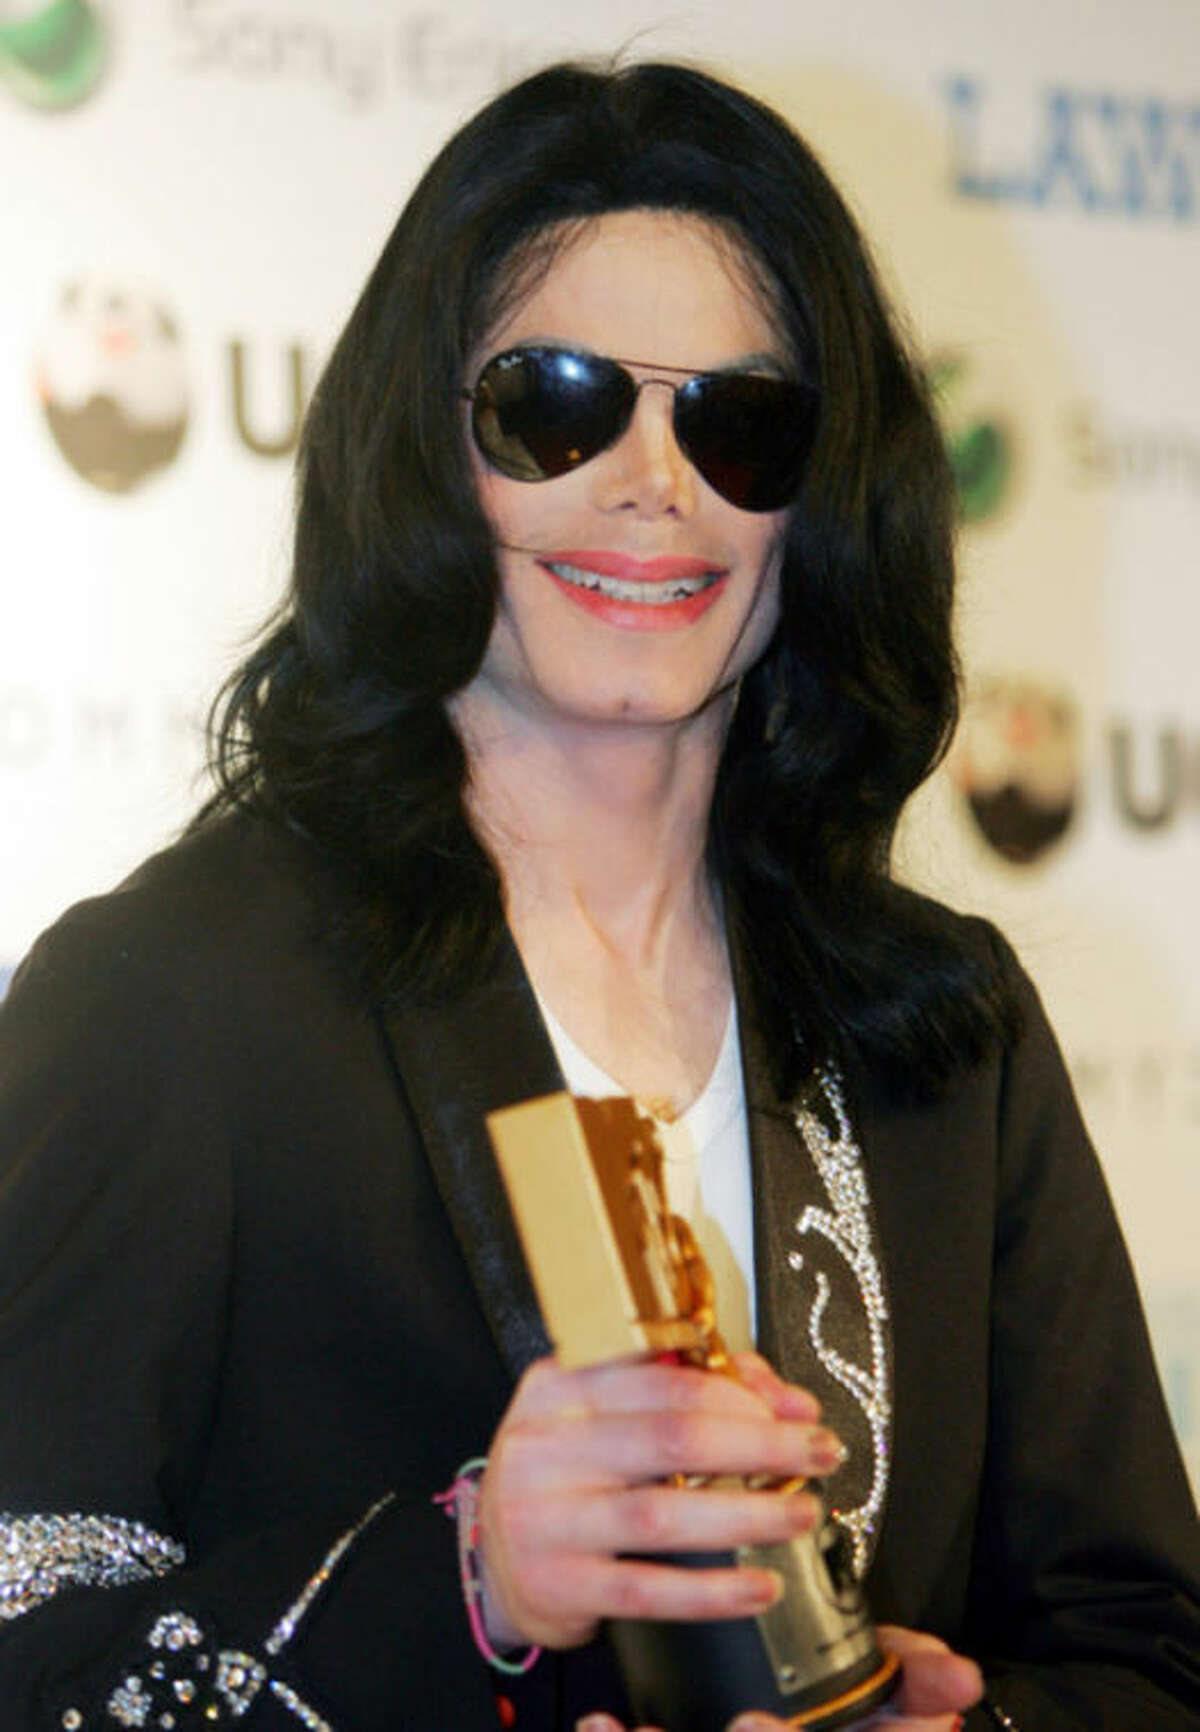 FILE - In this May 27, 2006 file photo, Michael Jackson smiles during a press conference of the MTV Video Music Awards Japan 2006 in Tokyo. The U.S. entertainer was awarded a Legend Award at the ceremony. Jurors hearing a civil case in Los Angeles filed by Jackson?'s mother, Katherine Jackson, have heard numerous stories about the entertainer?'s devotion to his children as expressed through extravagant birthday parties and secret family outings. The tender moments have been described throughout the trial, which concluded its eighth week on Friday, June 21, 2013. (AP Photo/Koji Sasahara, File)